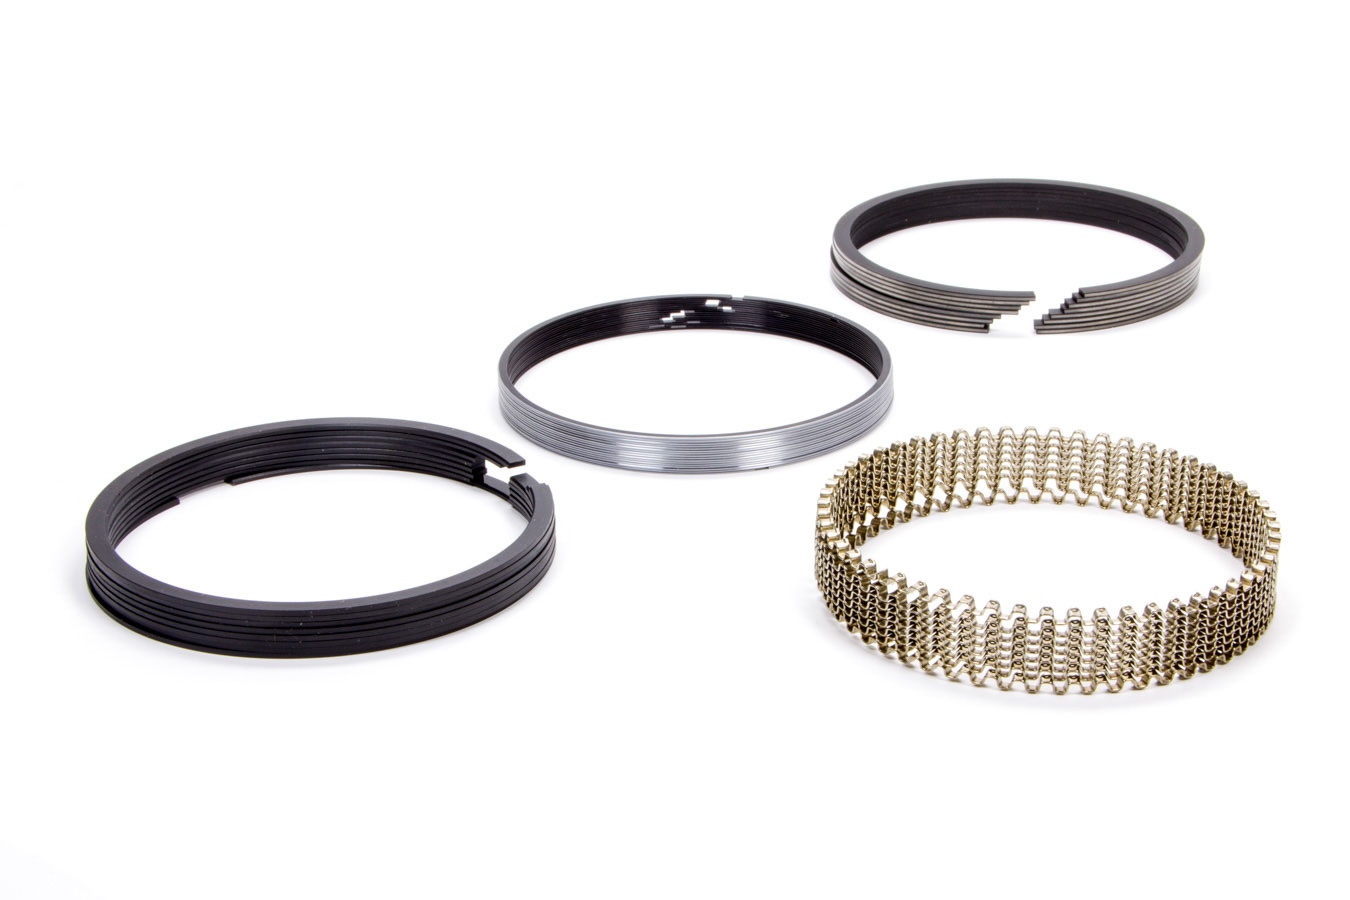 Hastings 2M4346030 Piston Rings, 4.030 in Bore, 1.5 x 1.5 x 4.0 mm Thick, Standard Tension, Moly, 8 Cylinder, Kit